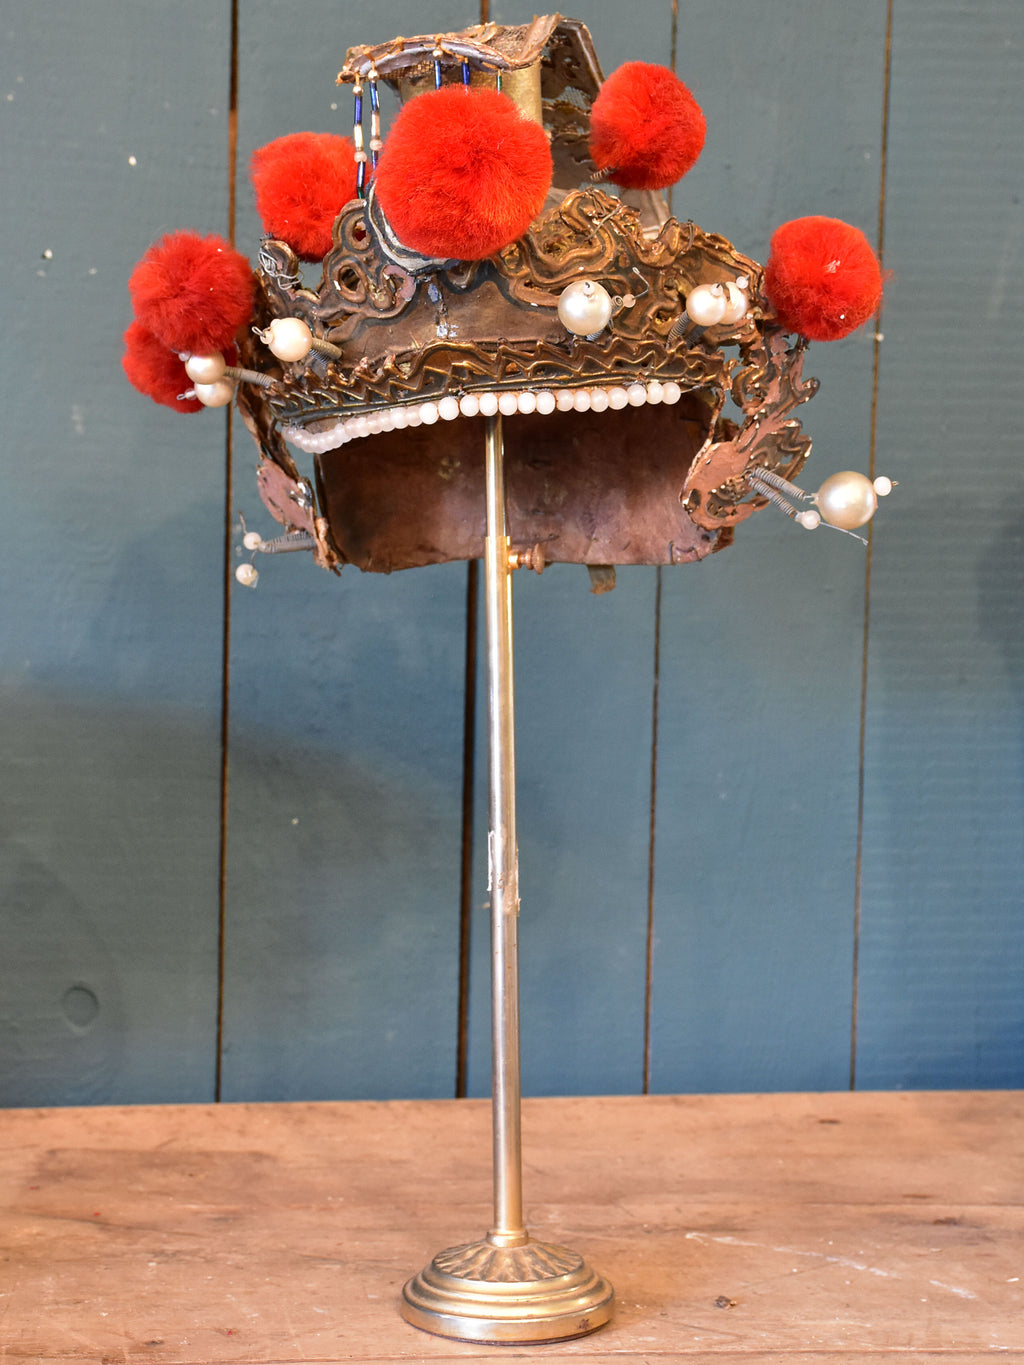 Theatre hat with stand from the Opéra de Pékin